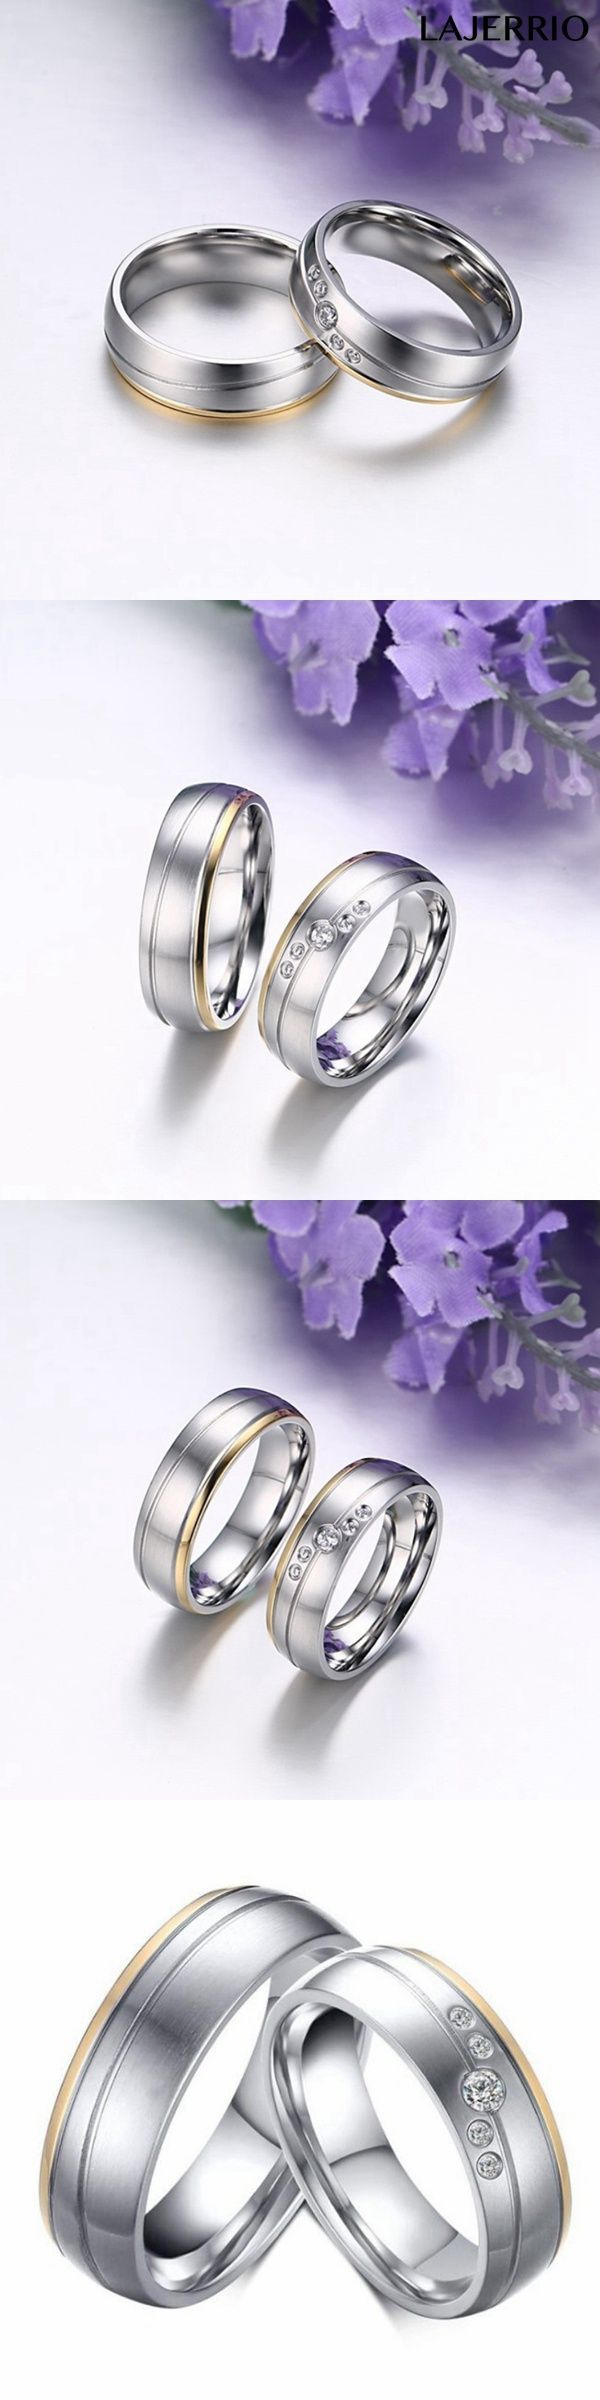 Lajerrio Jewelry Gold & Silver Round Cut White Sapphire Titanium Steel Promise Rings for Couples 811011